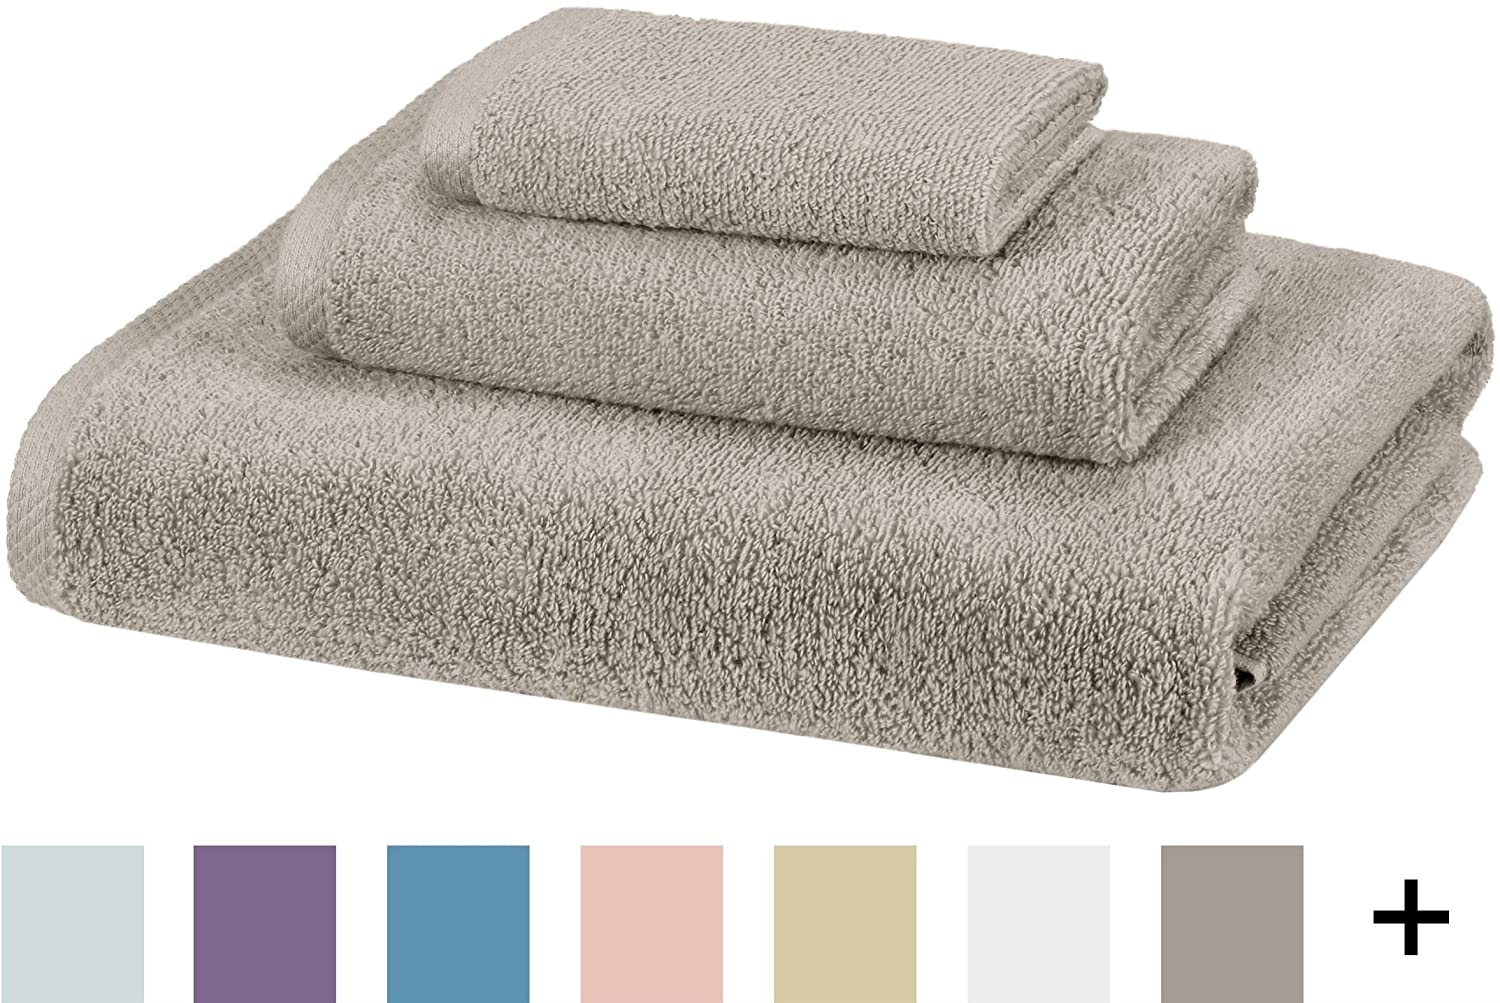 AmazonBasics Quick-Dry 3-Piece Towel Set, Platinum